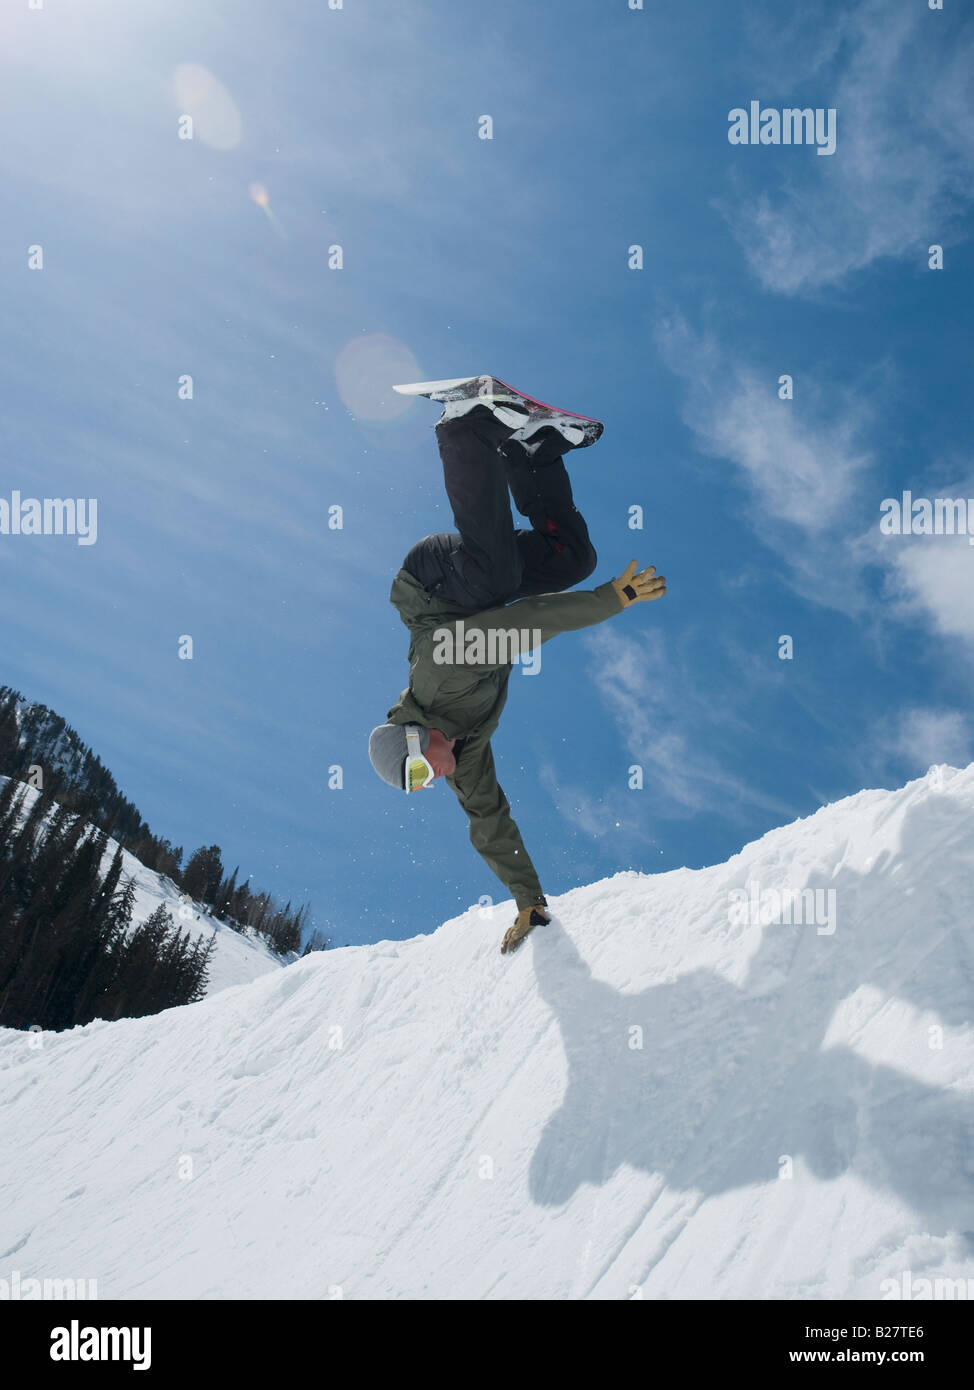 Man performing trick on snowboard - Stock Image